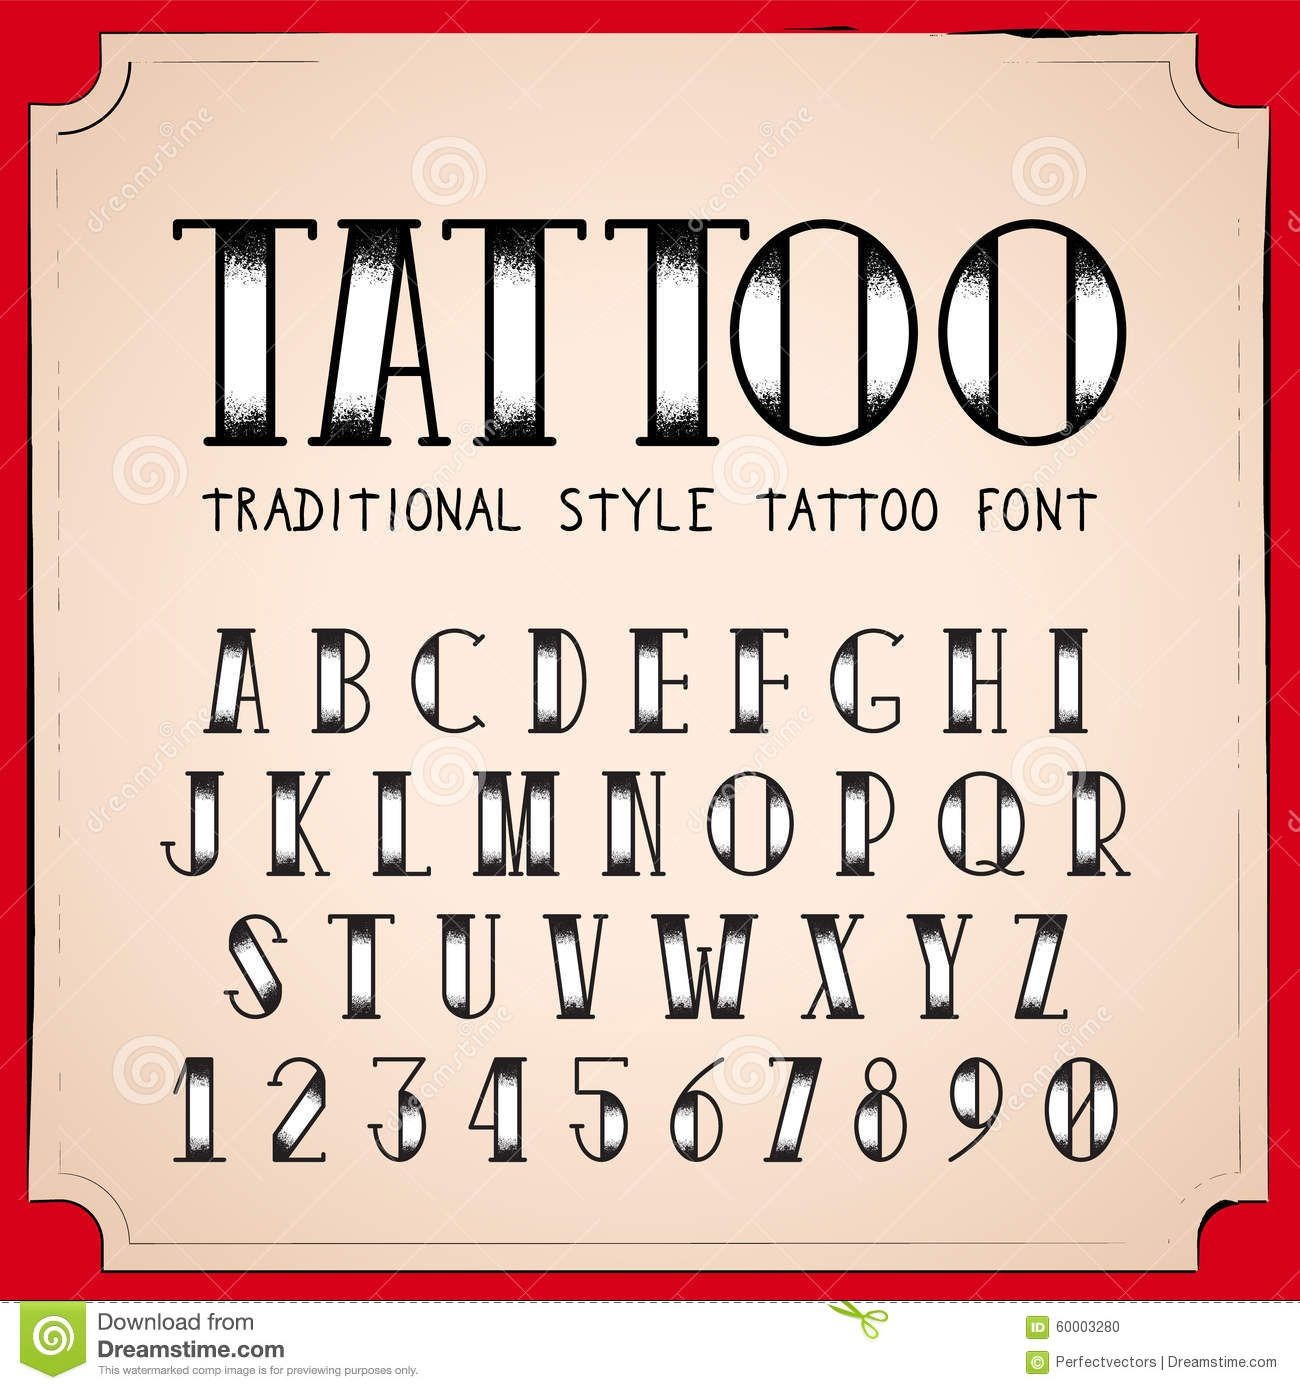 Mooring font old school tattoo typeface with free vector